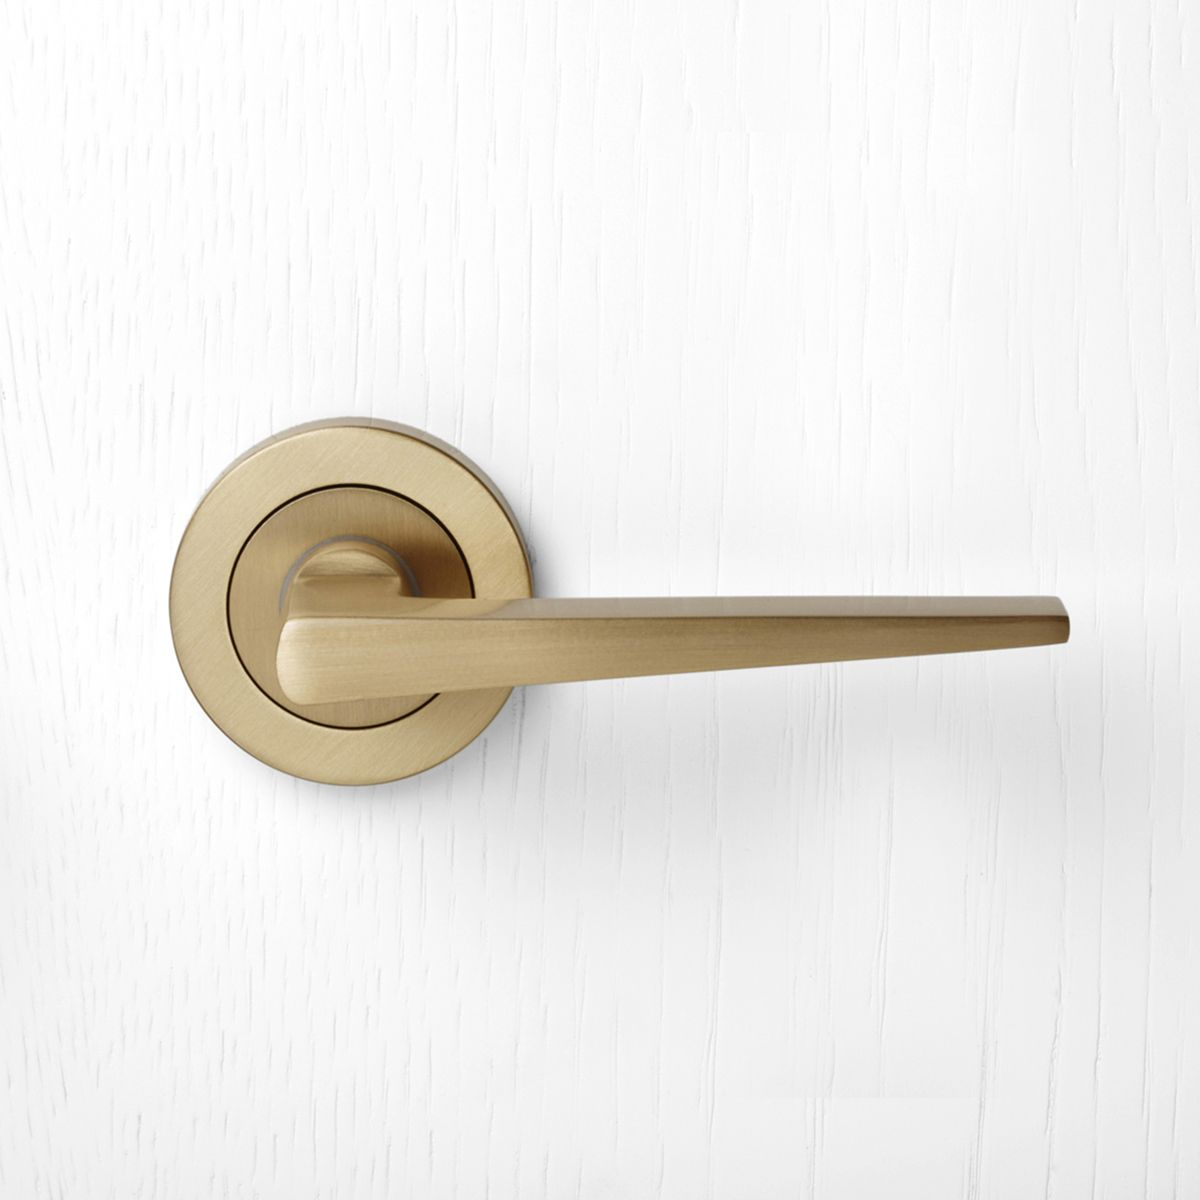 870 Pittella Contemporary Satin Brass Door Handle Pittella Contemporary Interiordesign Satinbrass Do Door Handles Brass Door Handles Door Handles Interior